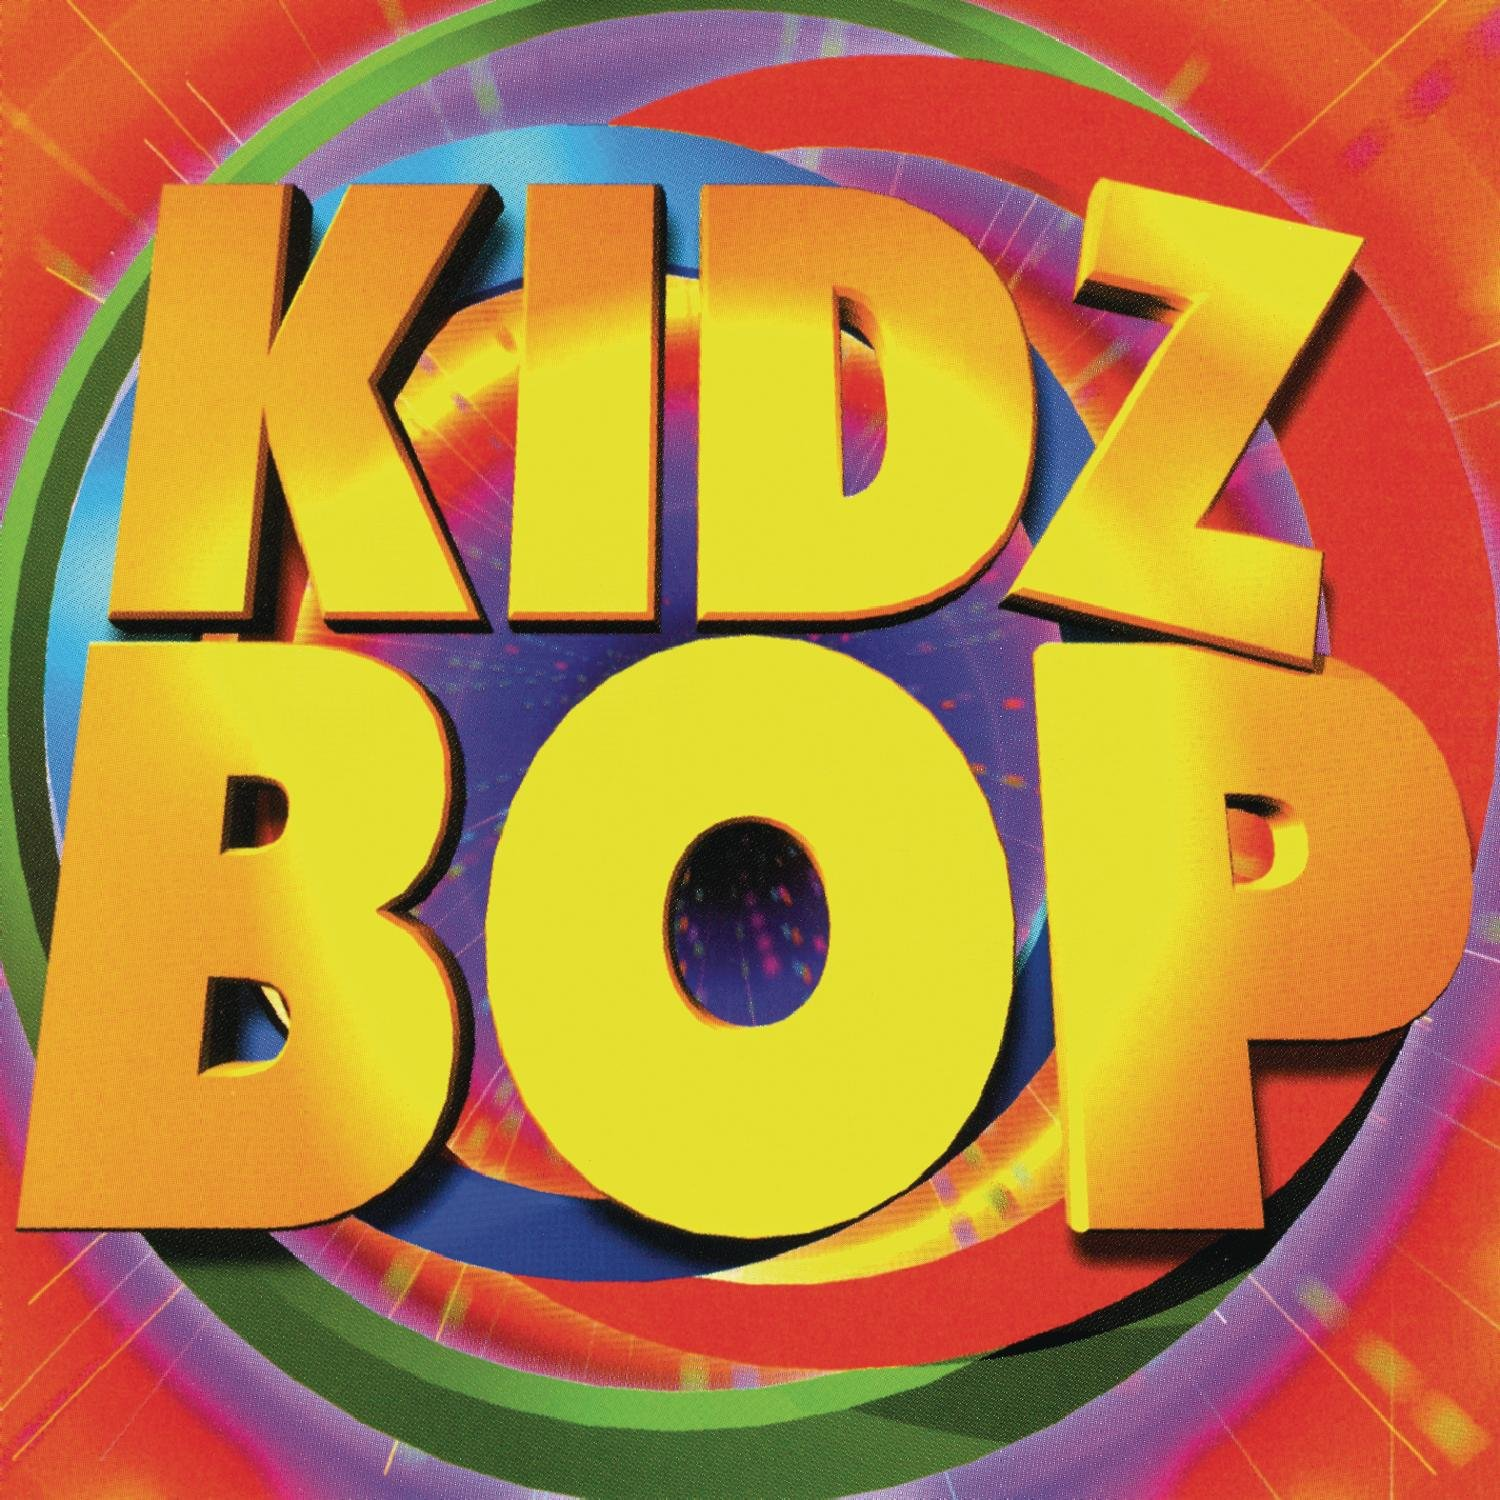 Kidz Bop Now on sale National products